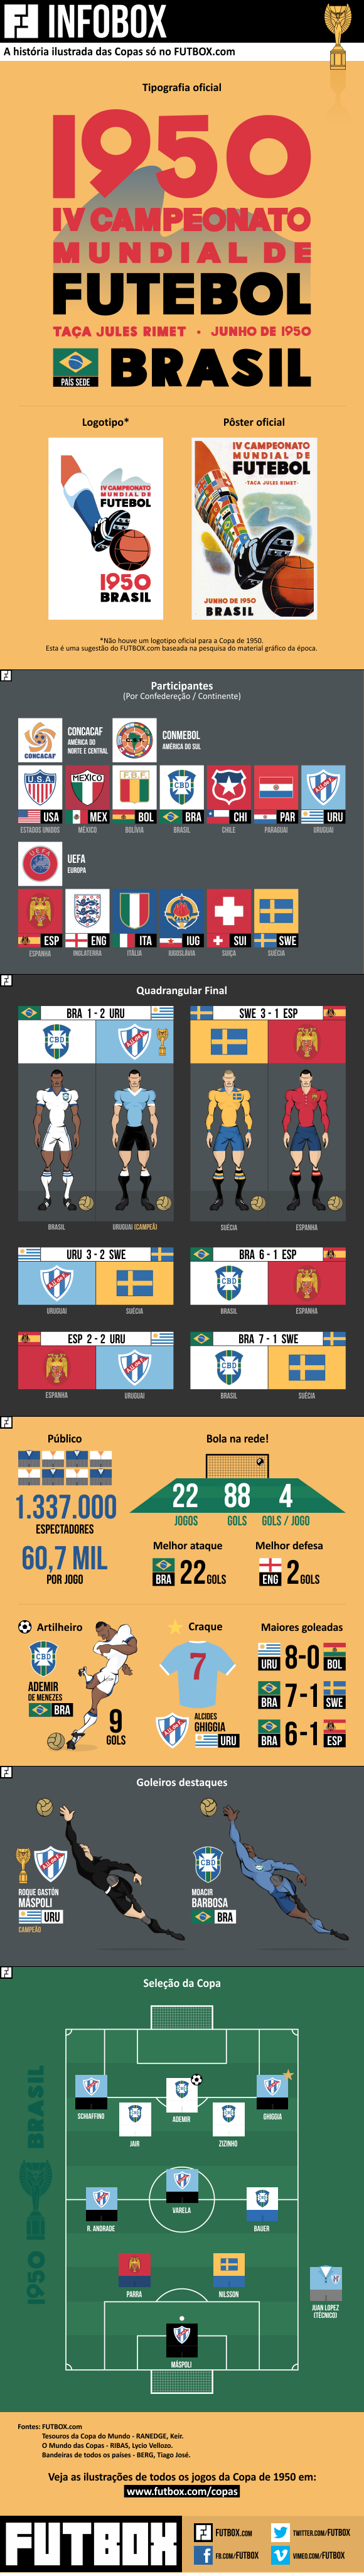 Infobox Copa do Mundo de 50